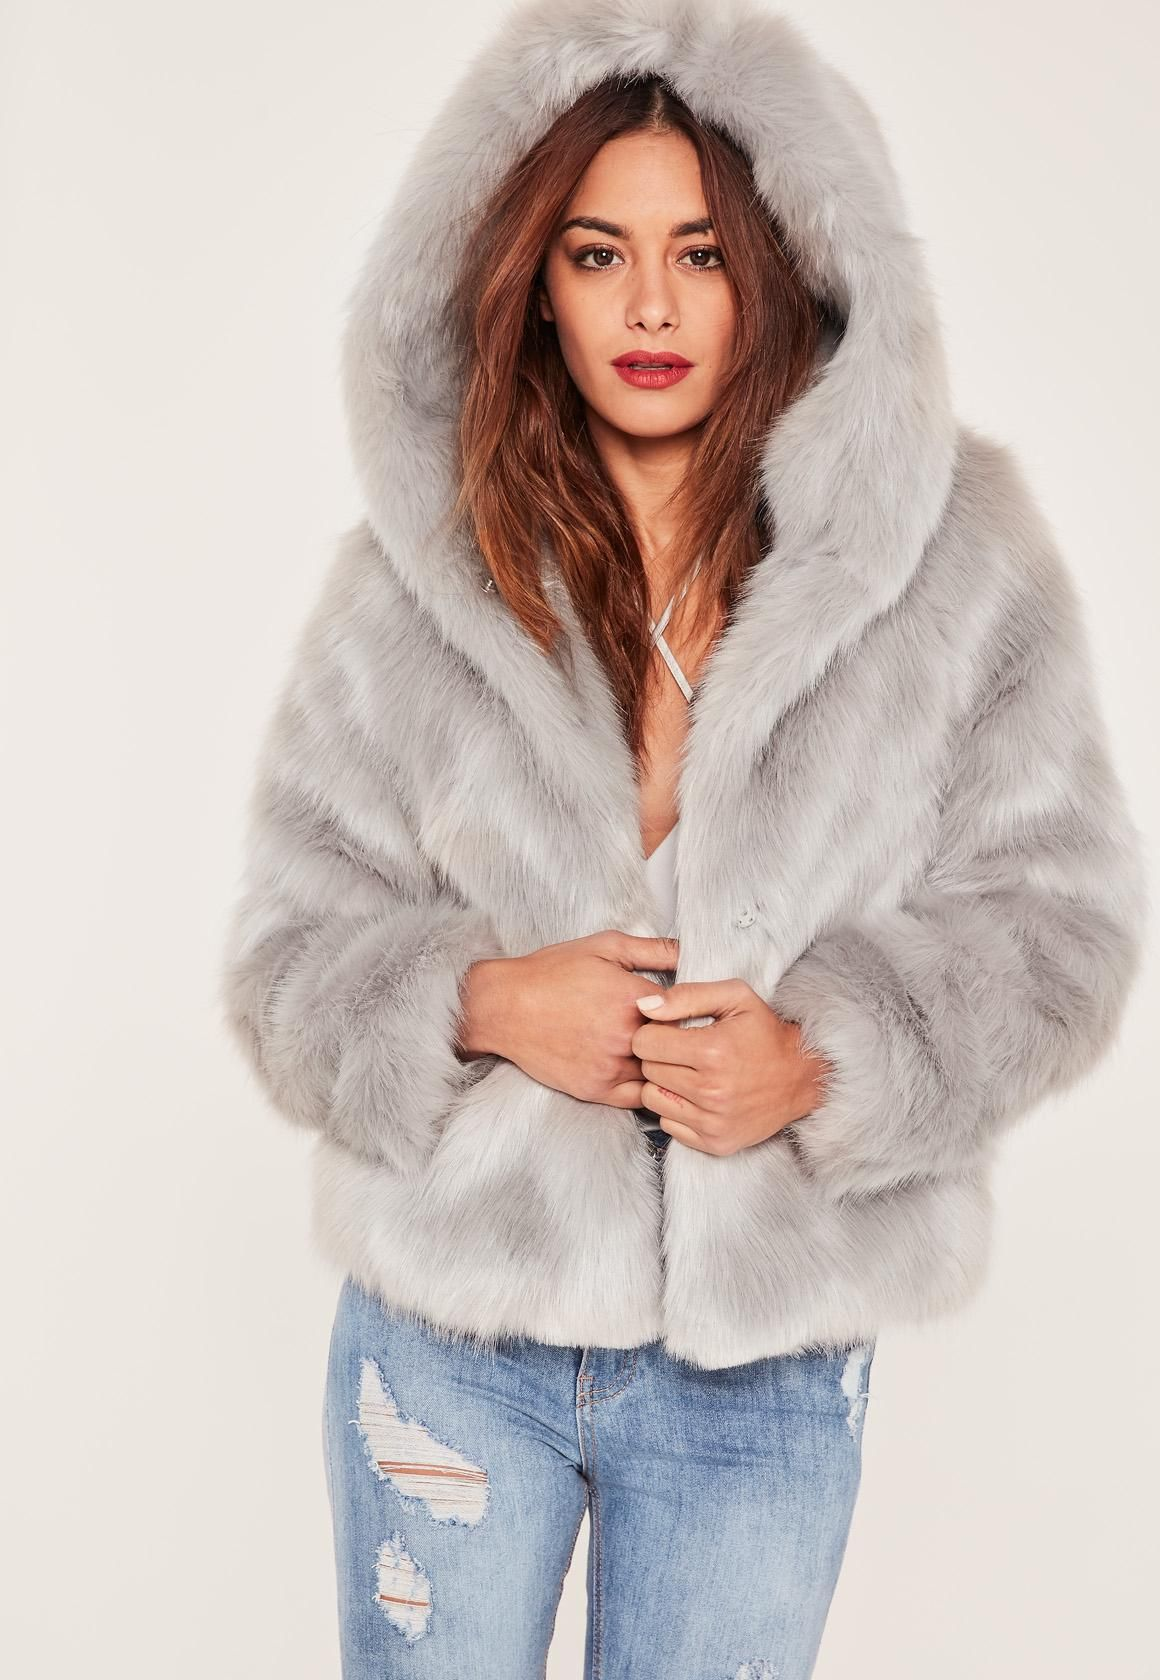 0718fd461 Missguided - Caroline Receveur Grey Hooded Faux Fur Coat | Desires ...